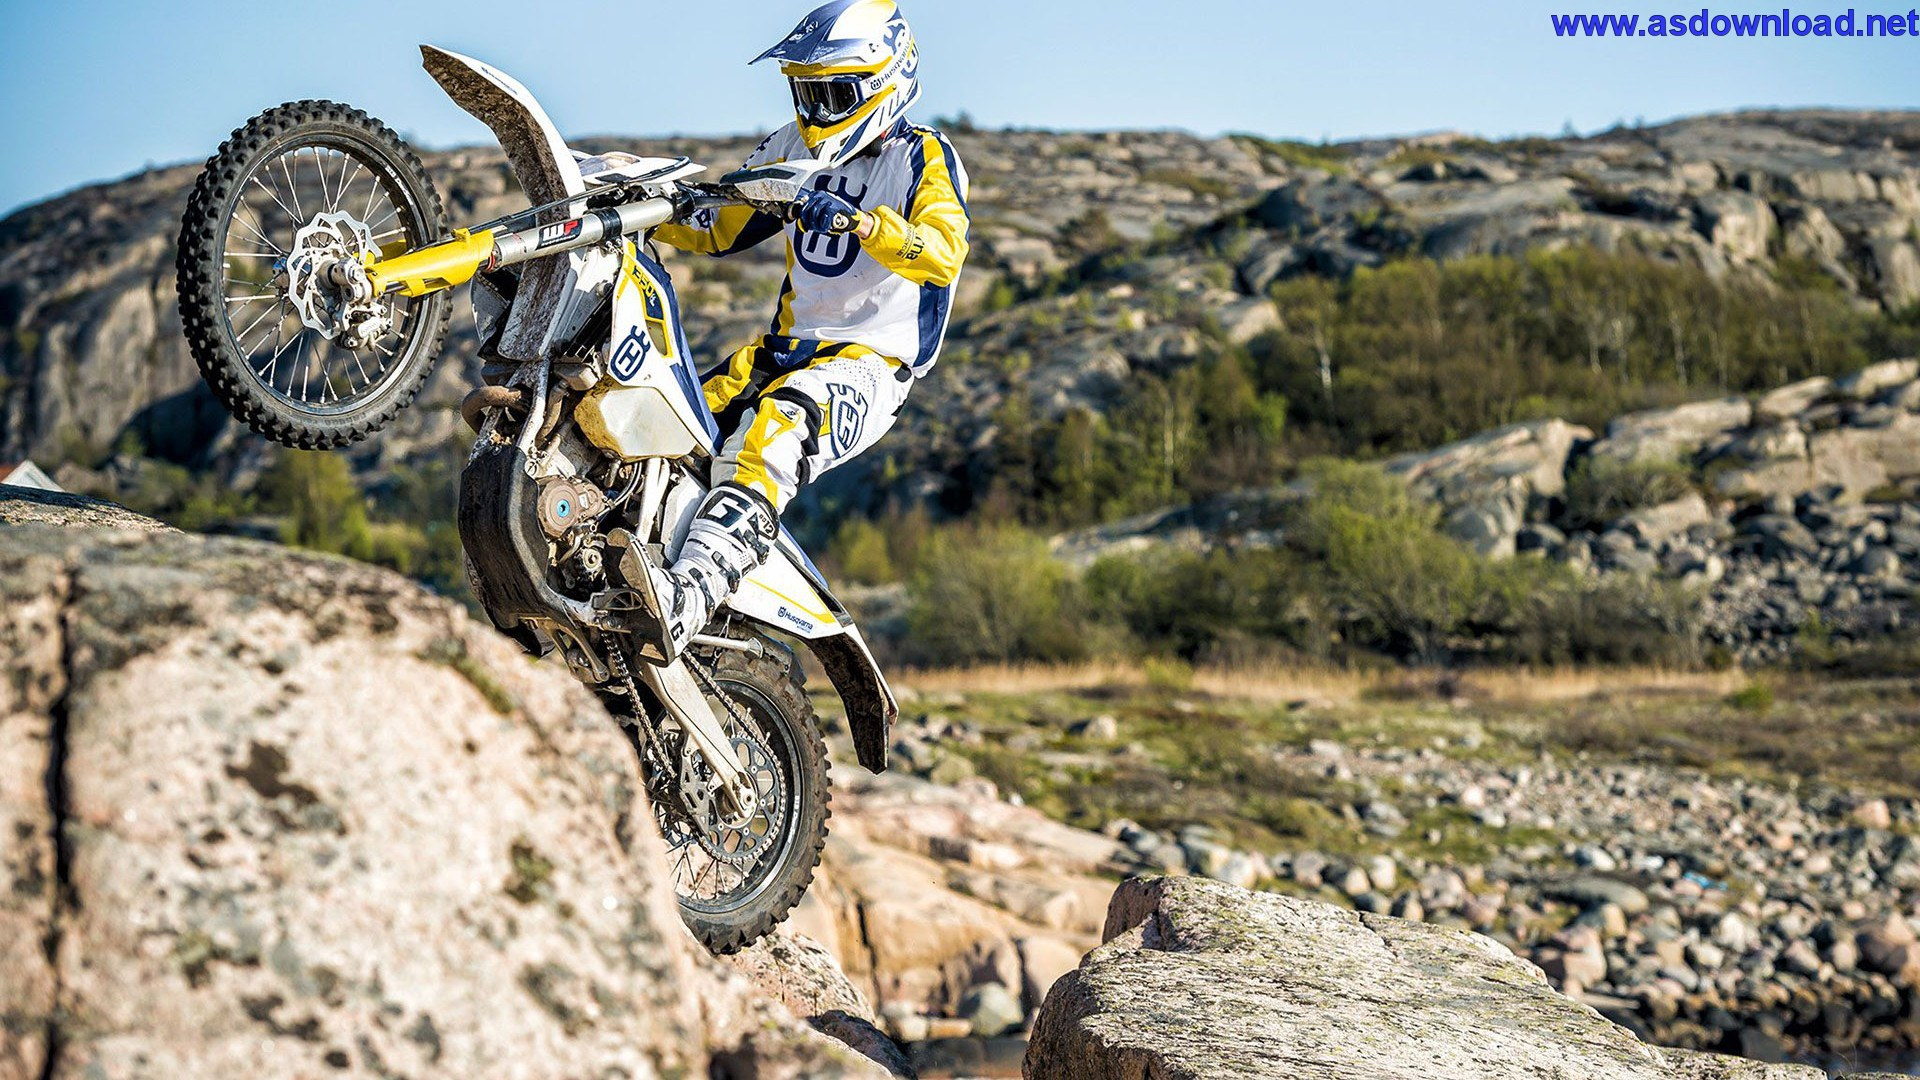 2015-Husqvarna-FE-501-Wallpaper